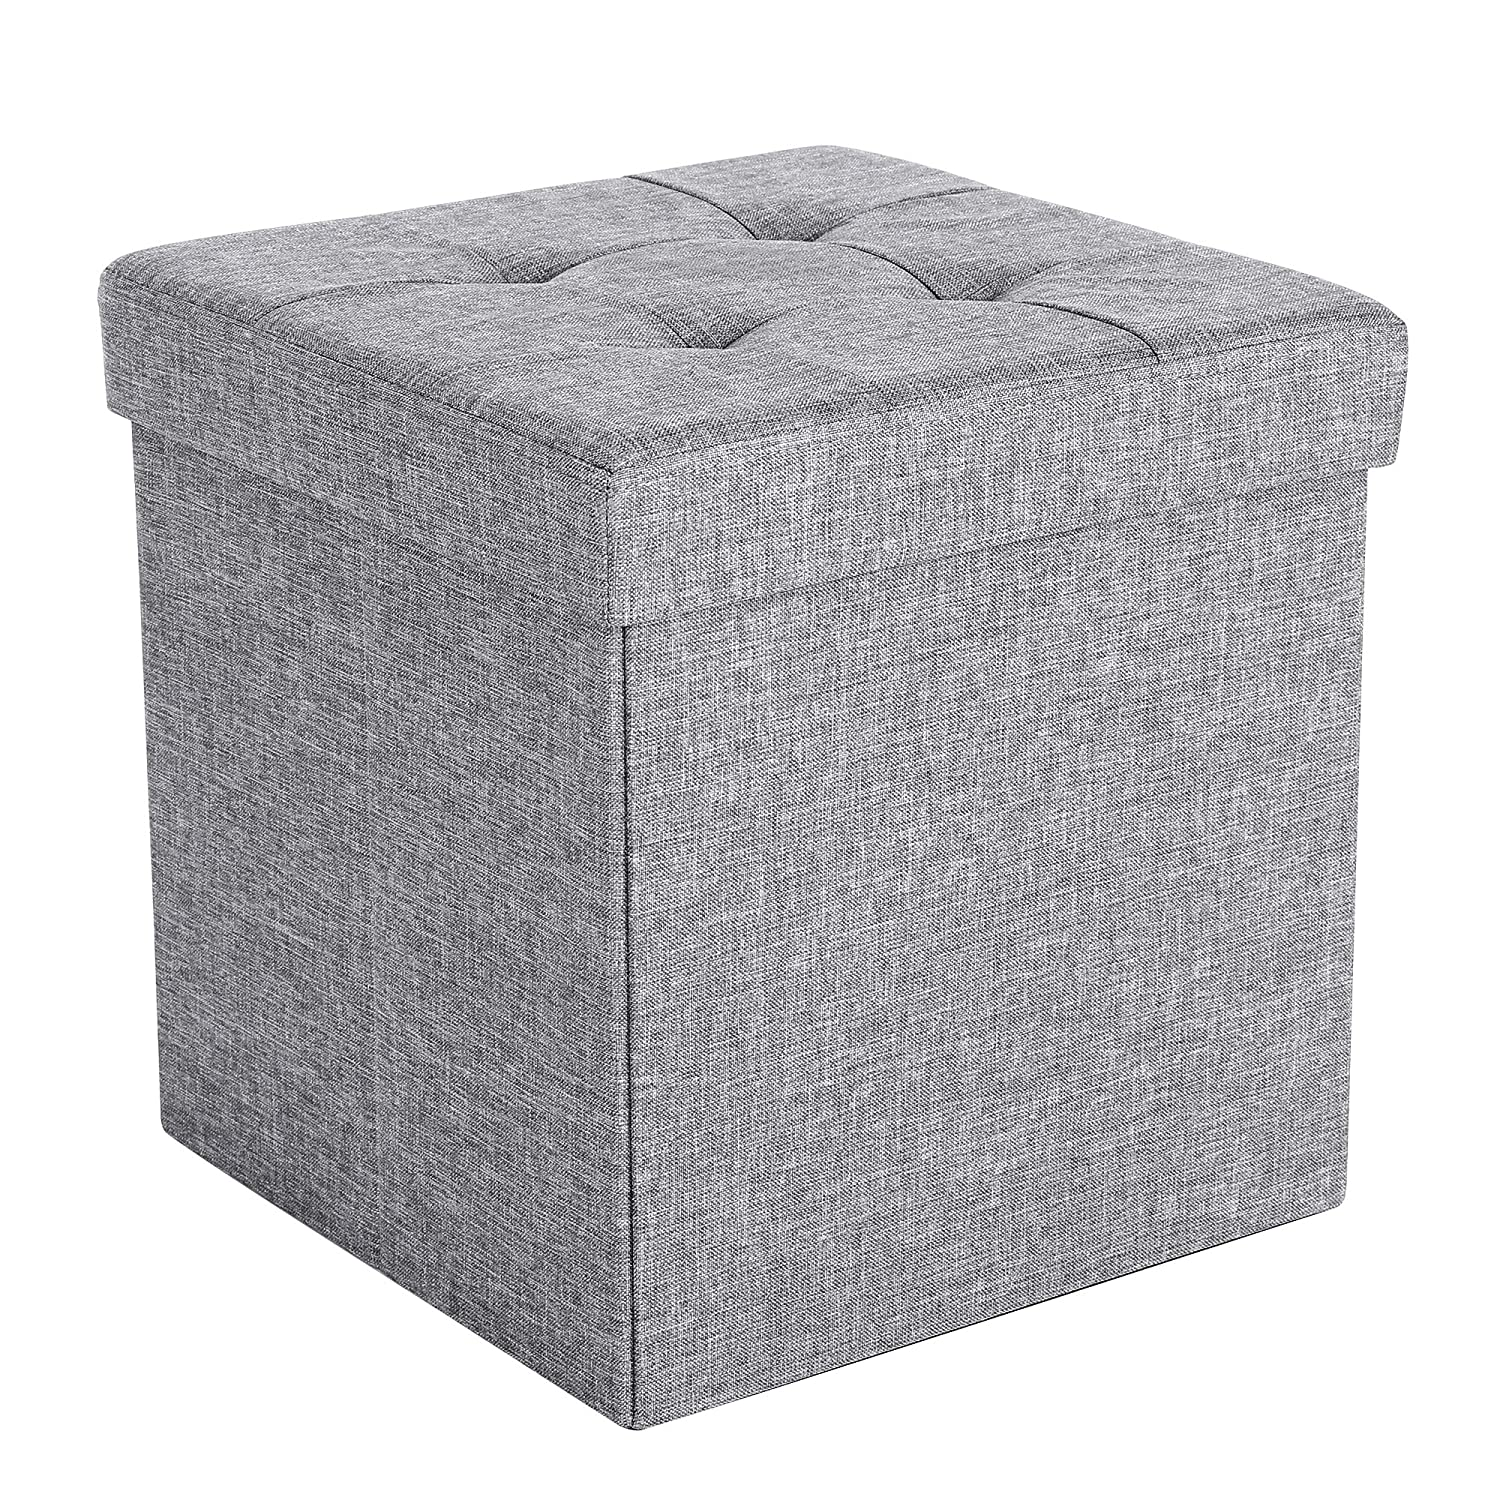 Songmics Fire Safety Folding Storage Ottoman Picnic Seat Versatile Space Saving Cubes Box Max Load 300 Kg Linenette Light Gray 38 X 38 X 38 Cm Lsf82 Gyx by Amazon